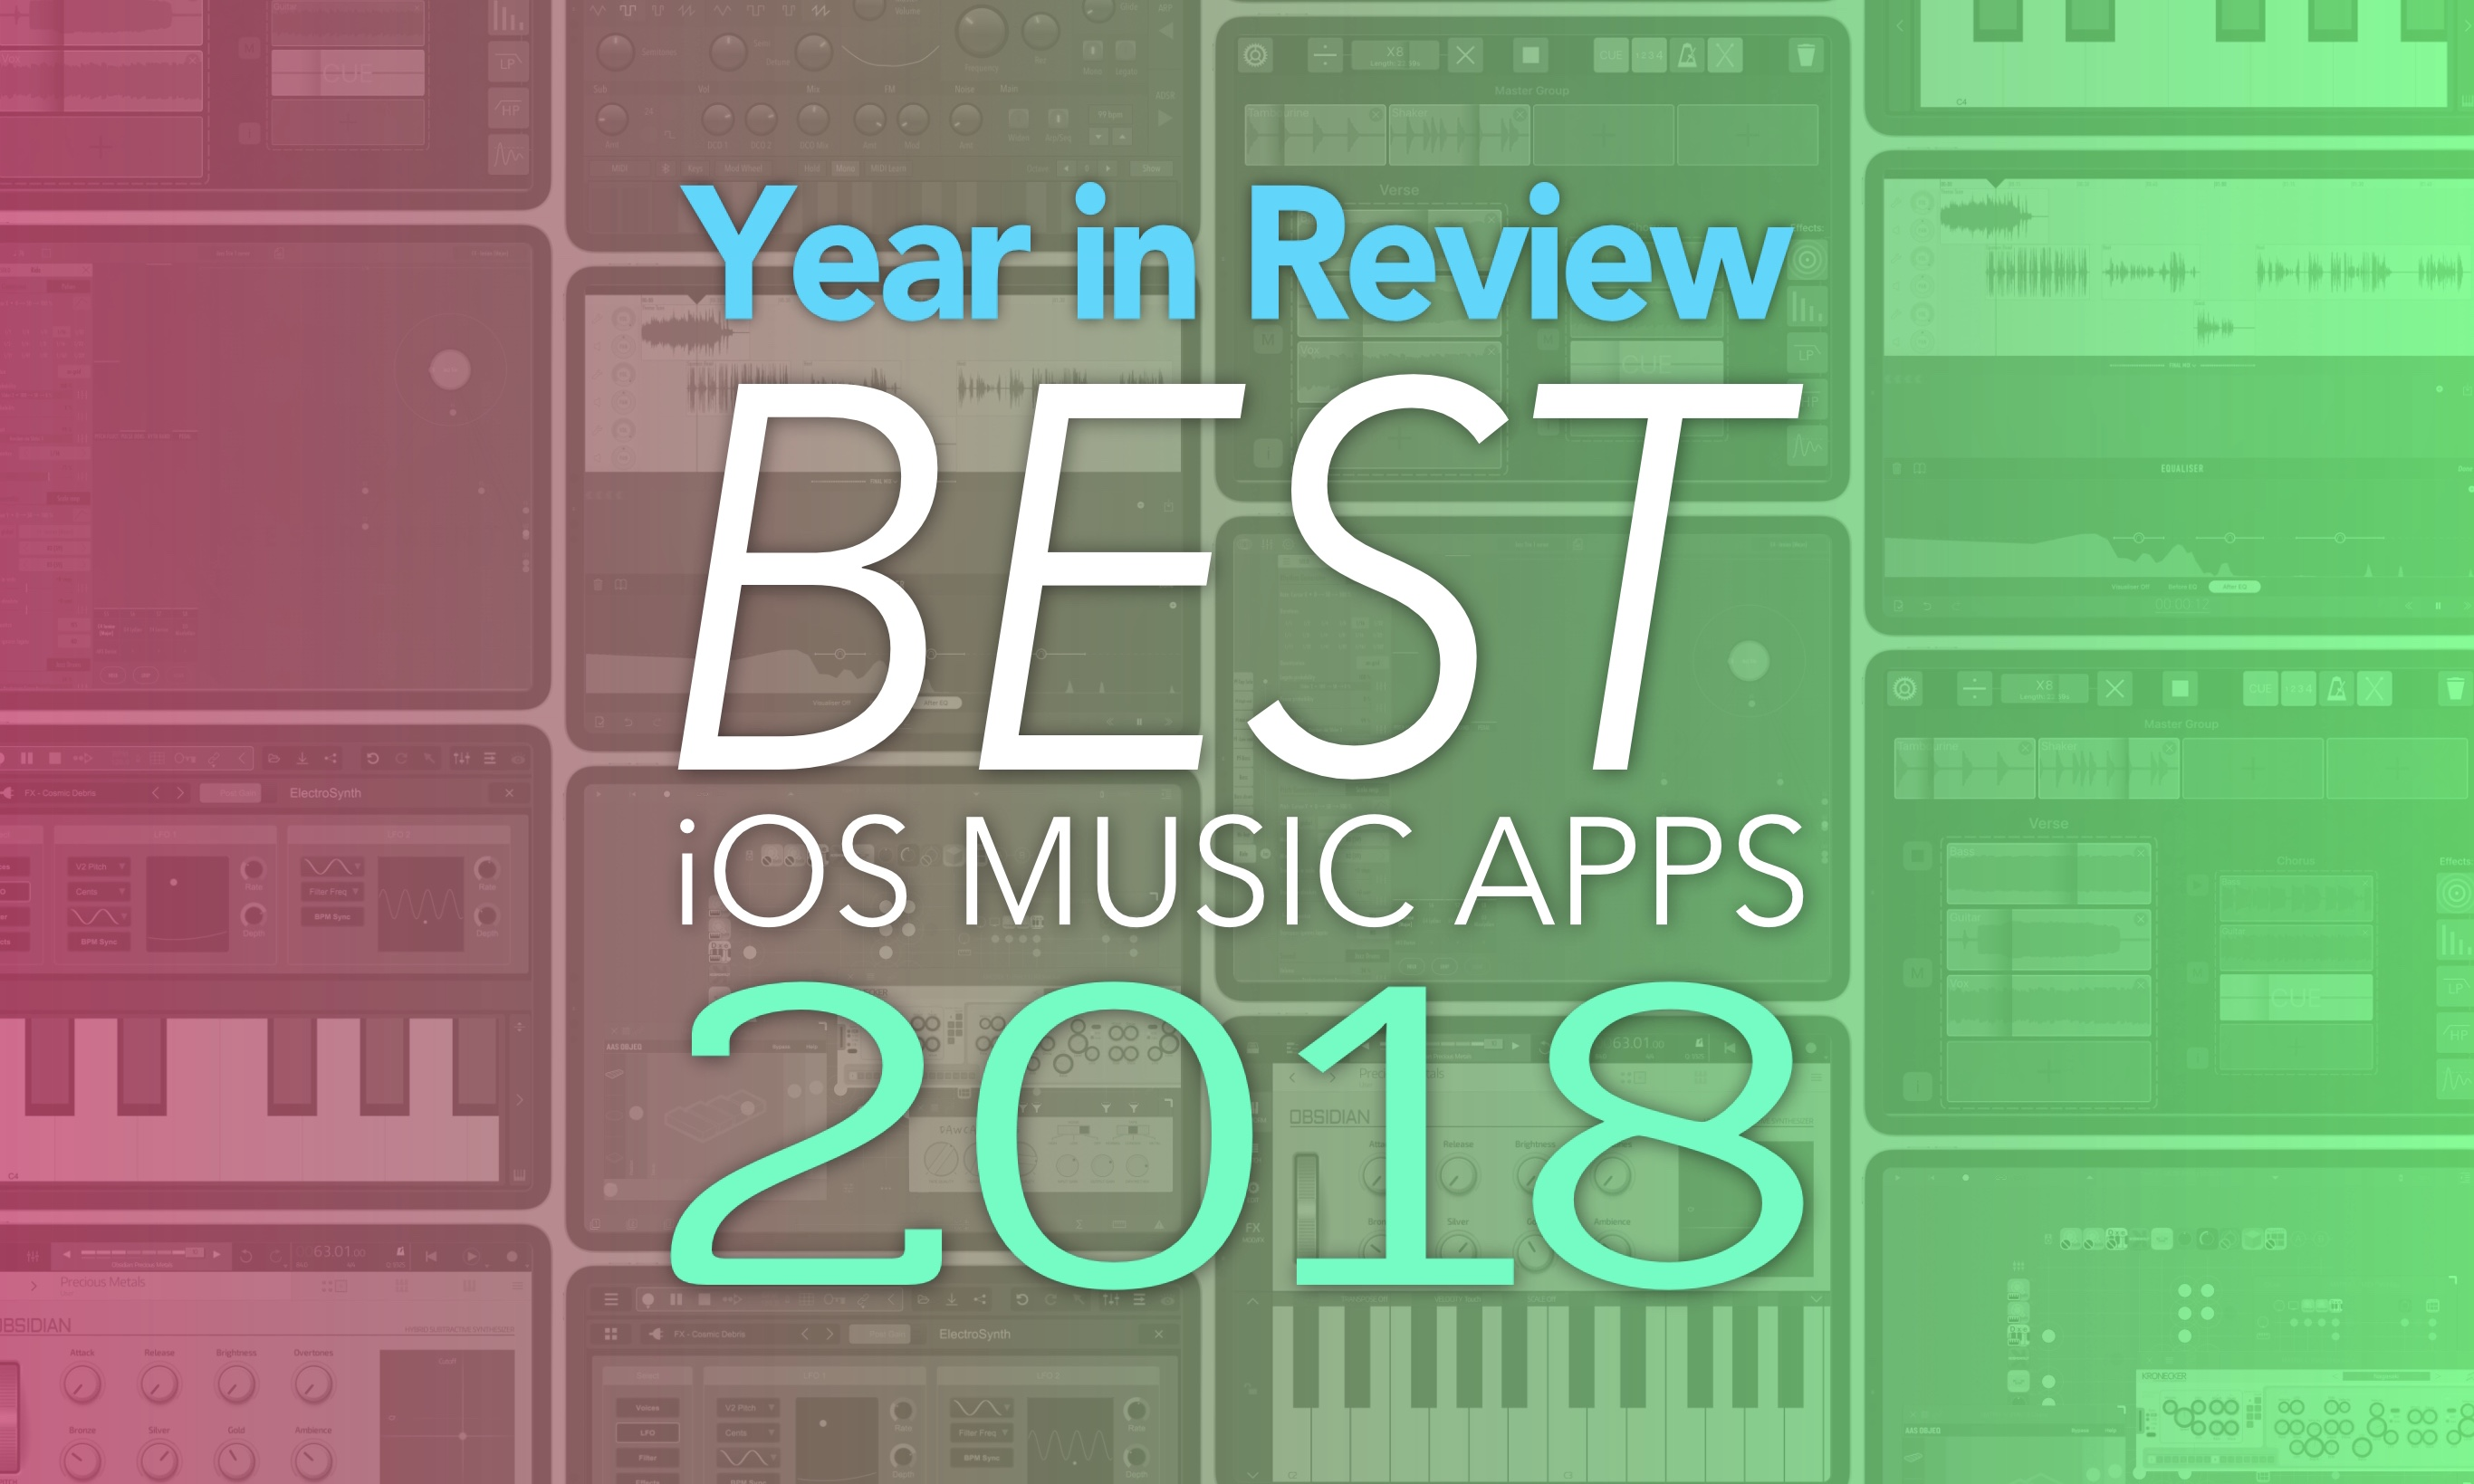 Best iOS Music Apps 2018